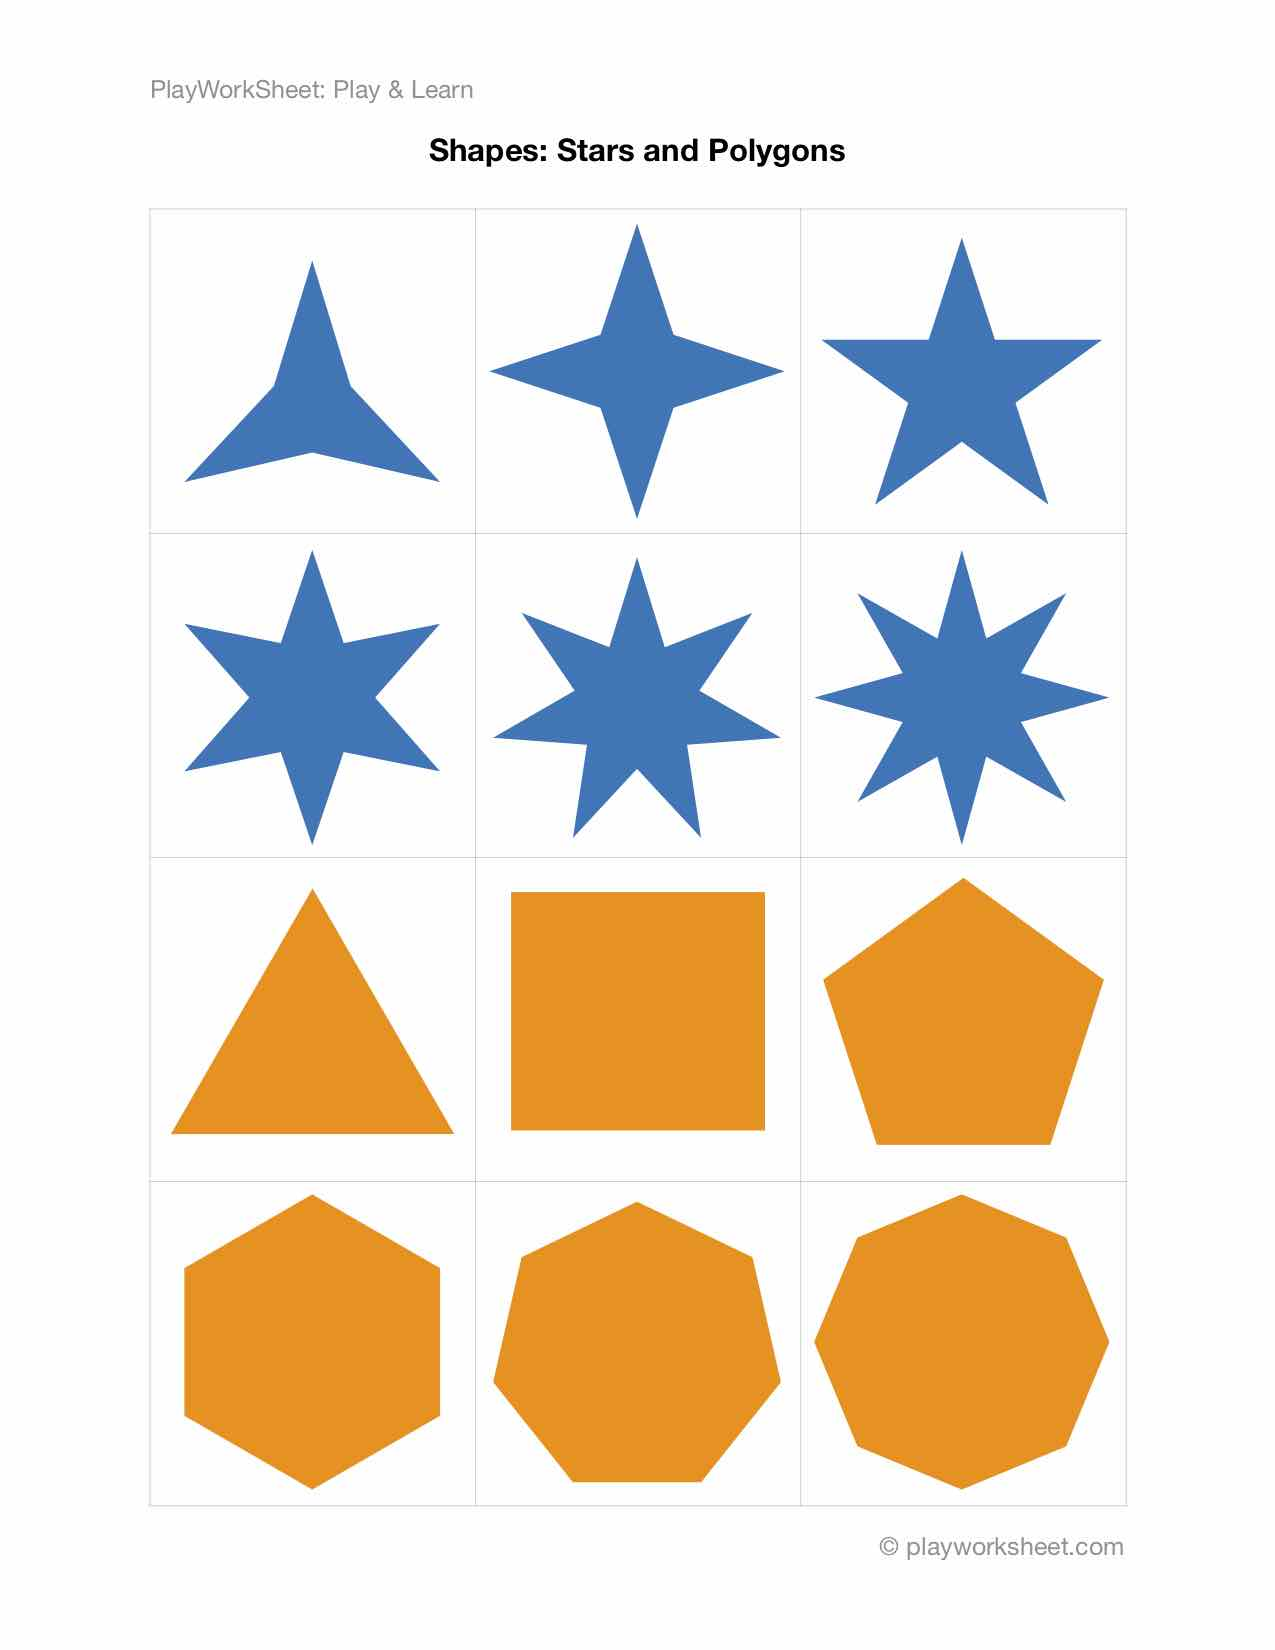 Stars And Polygons Shapes